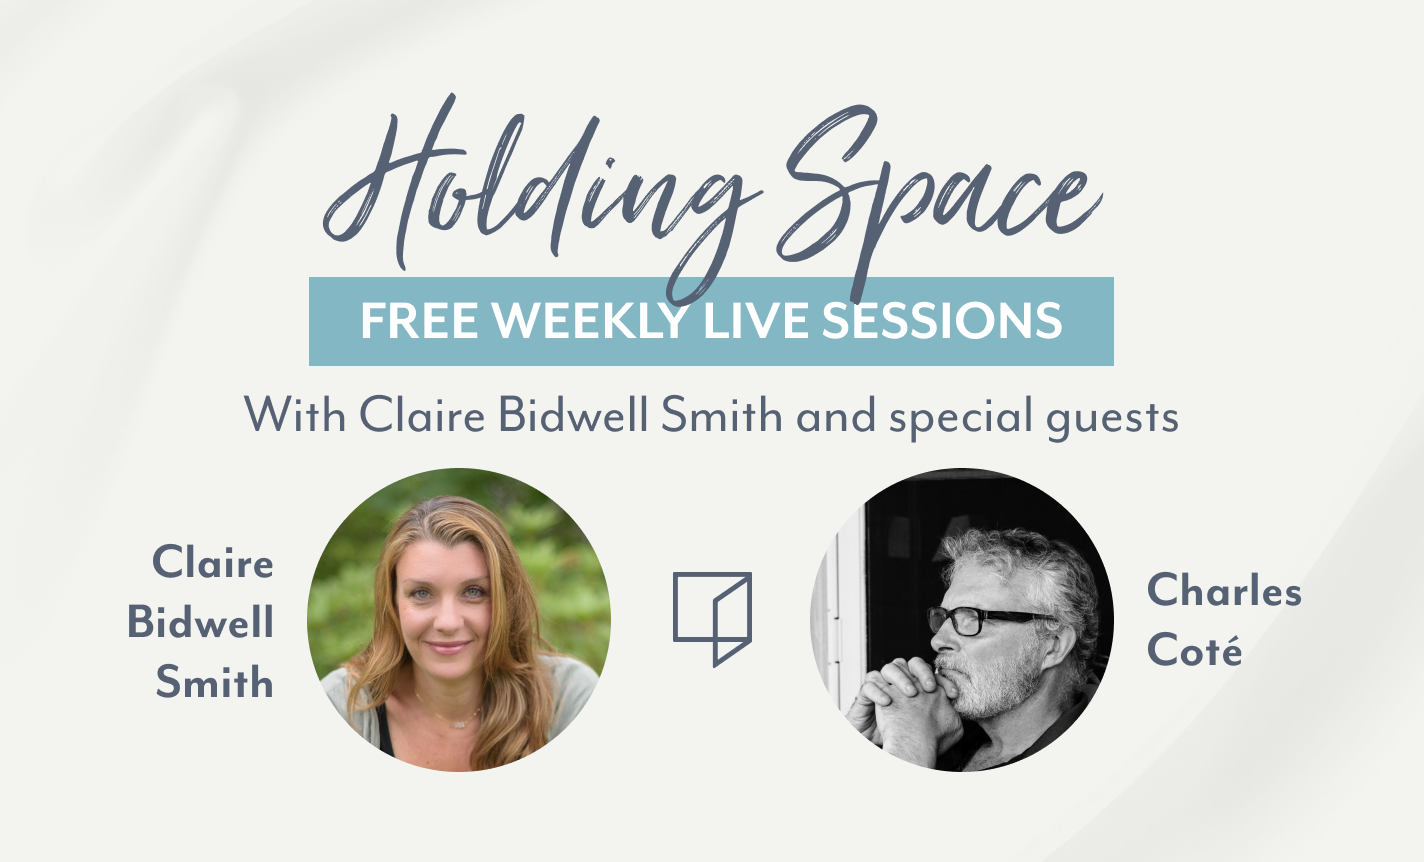 Holding Space: Claire Bidwell Smith & Charles Coté